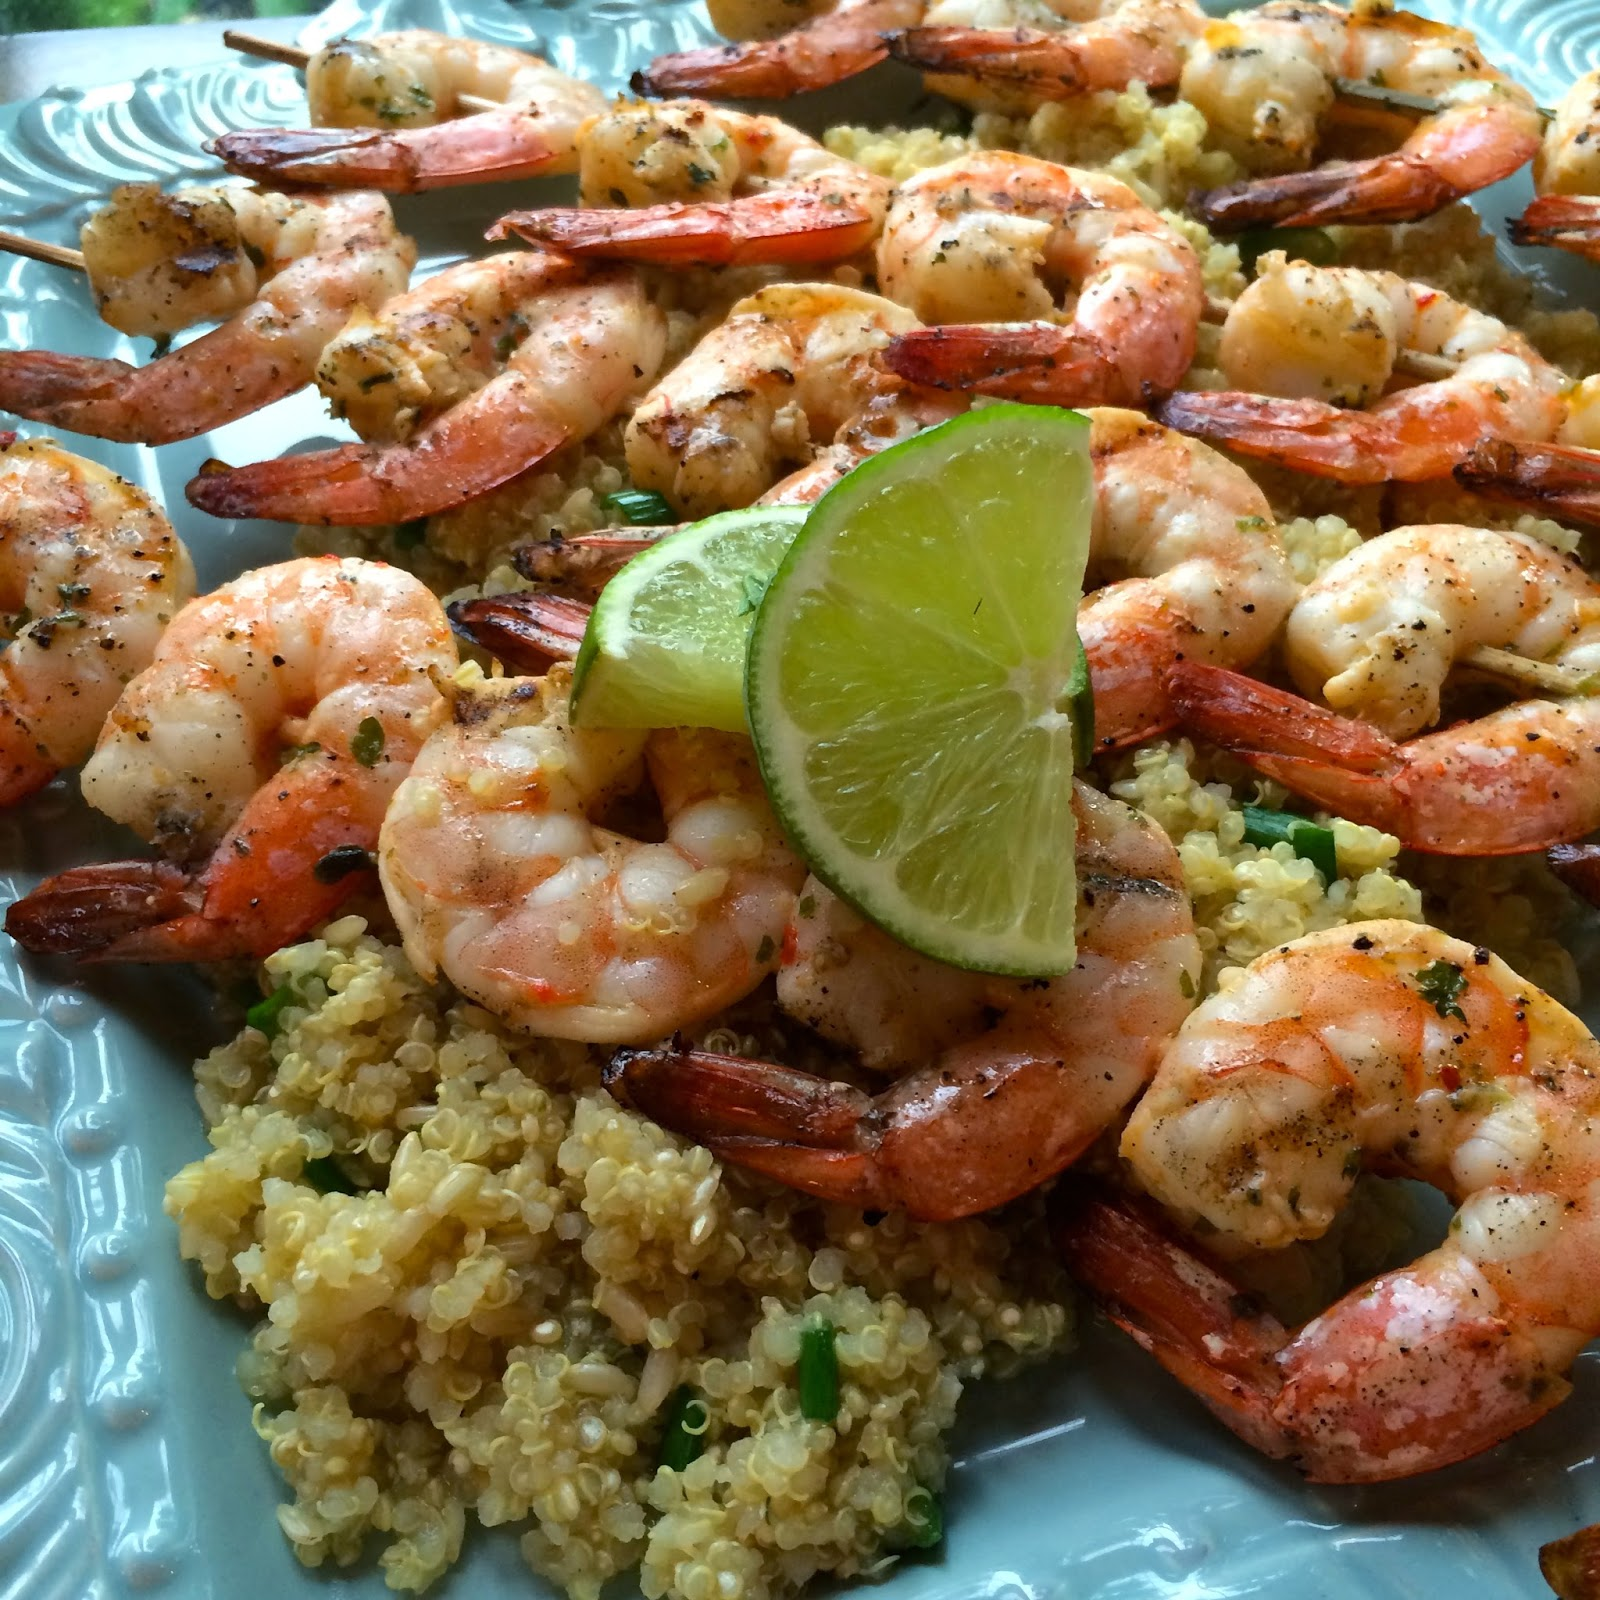 Grilled Tequila Lime Shrimp Skewers Over Quinoa